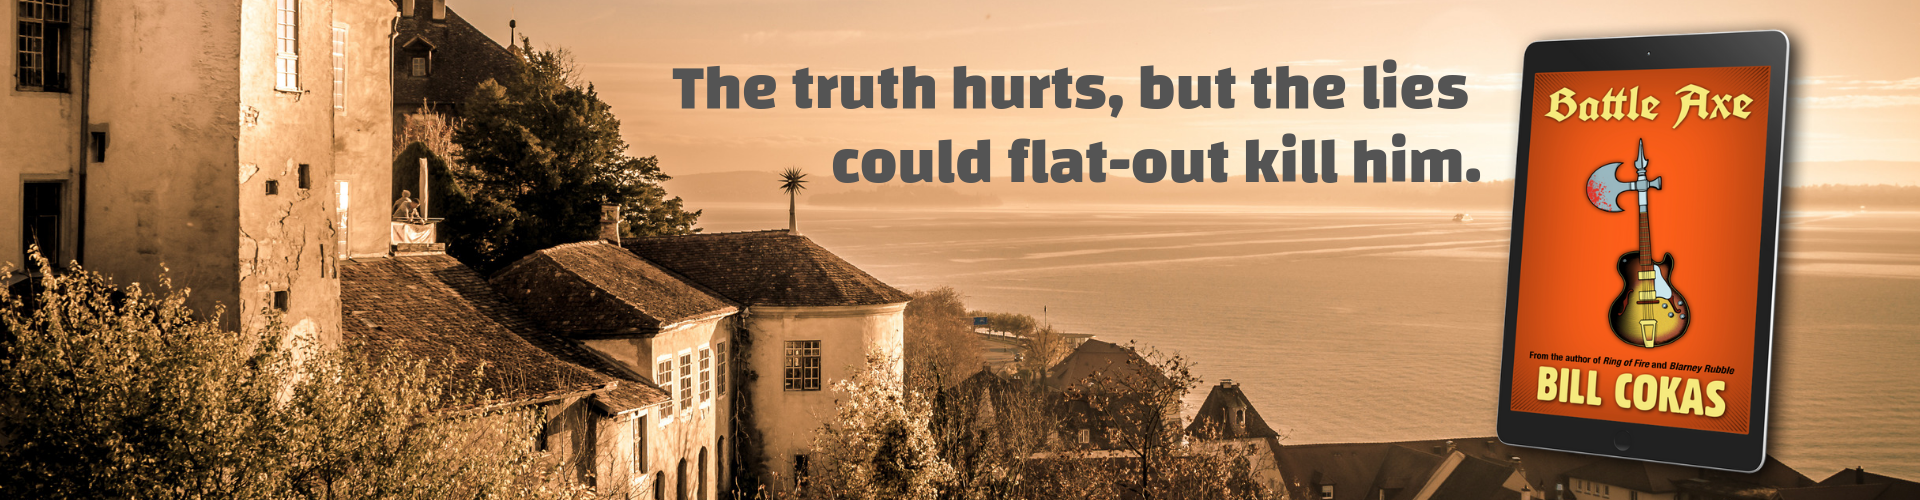 The truth hurts, but the lies could flat-out kill him.